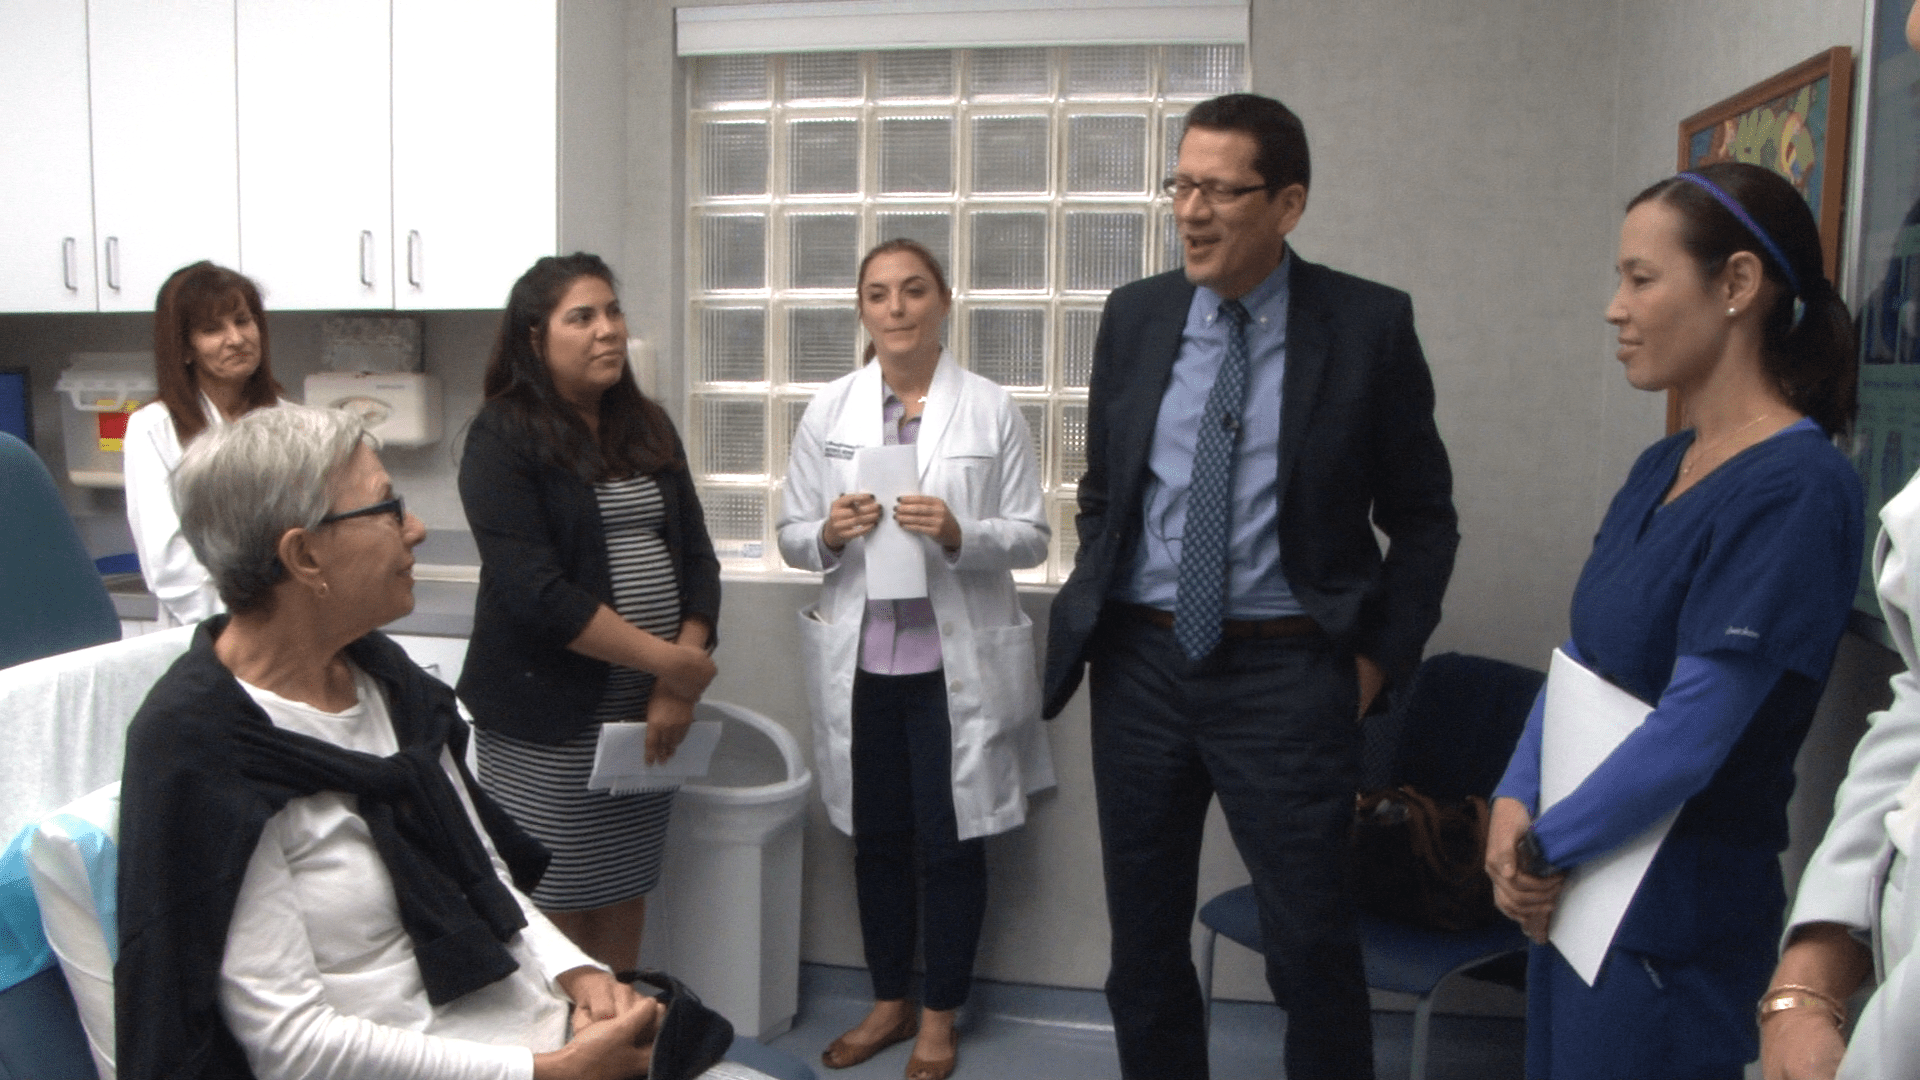 Grand Rounds at Water's Edge Dermatology